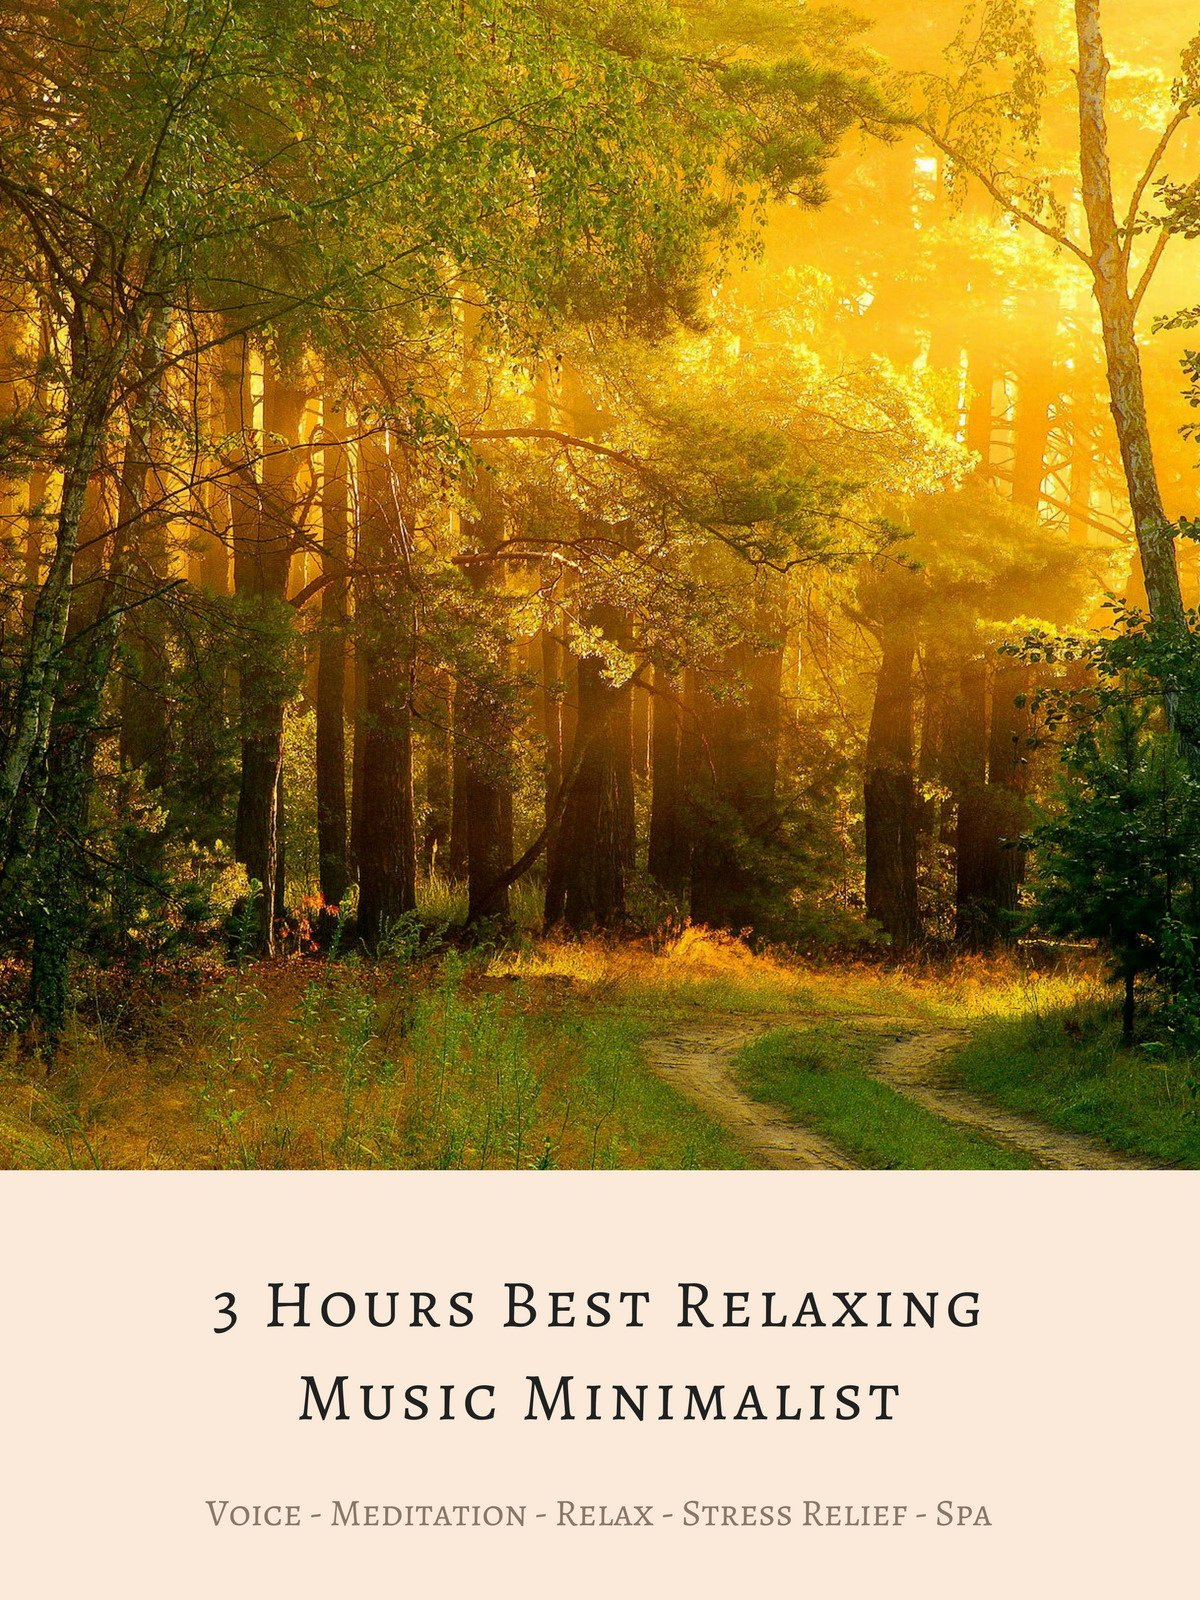 3 Hours Best Relaxing Music Minimalist on Amazon Prime Instant Video UK